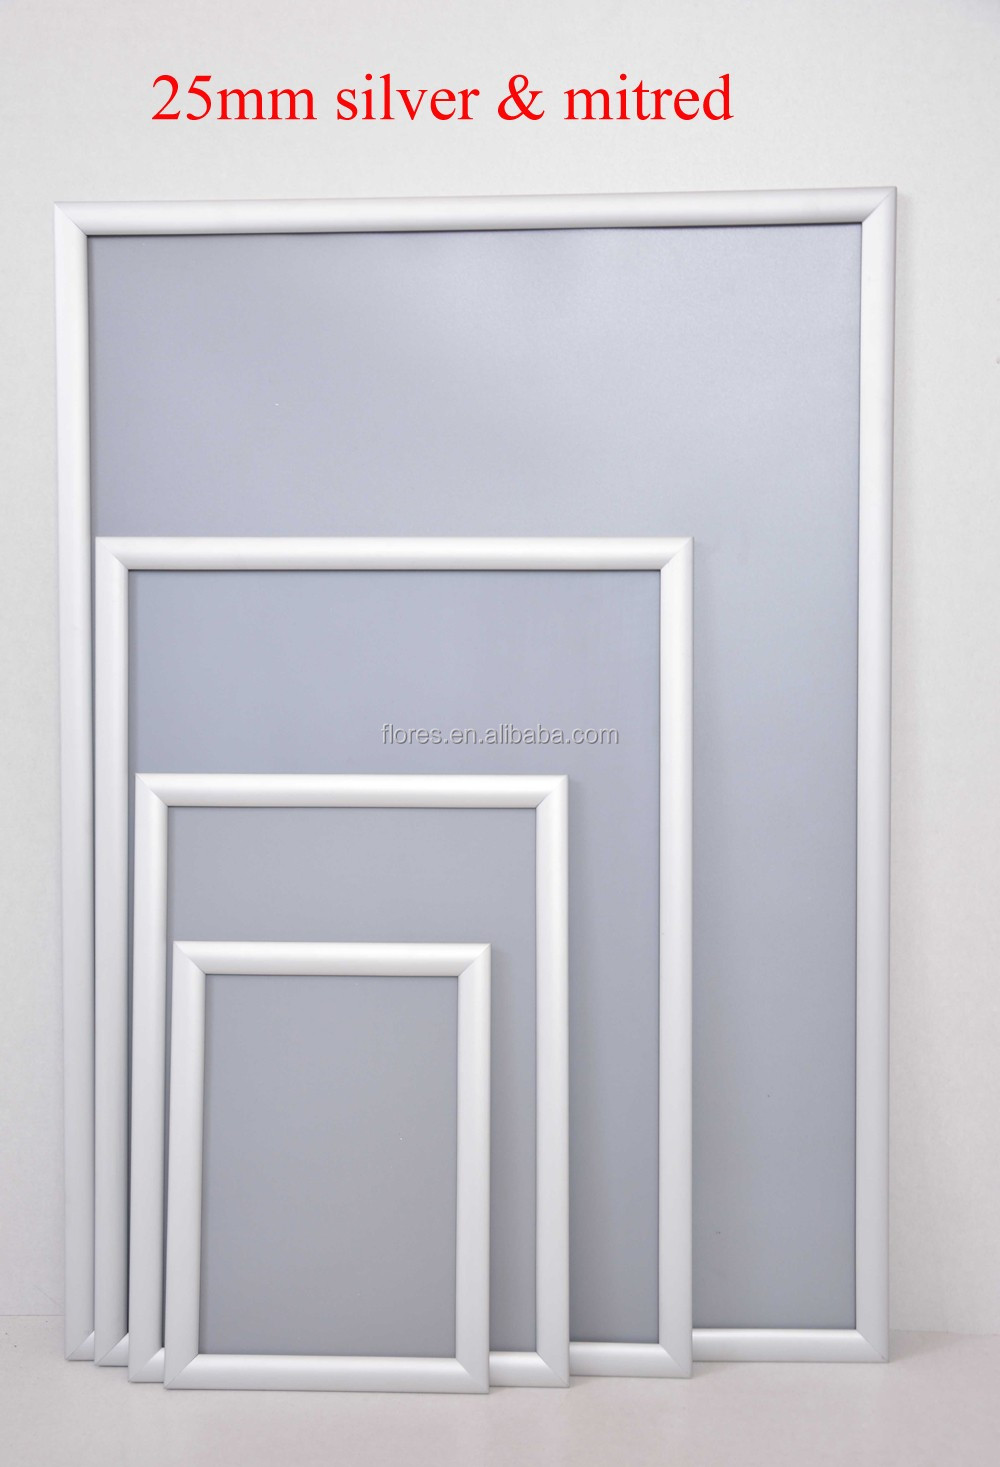 Aluminum Frame Wall : Customized metal high quality wall moounted aluminum clip